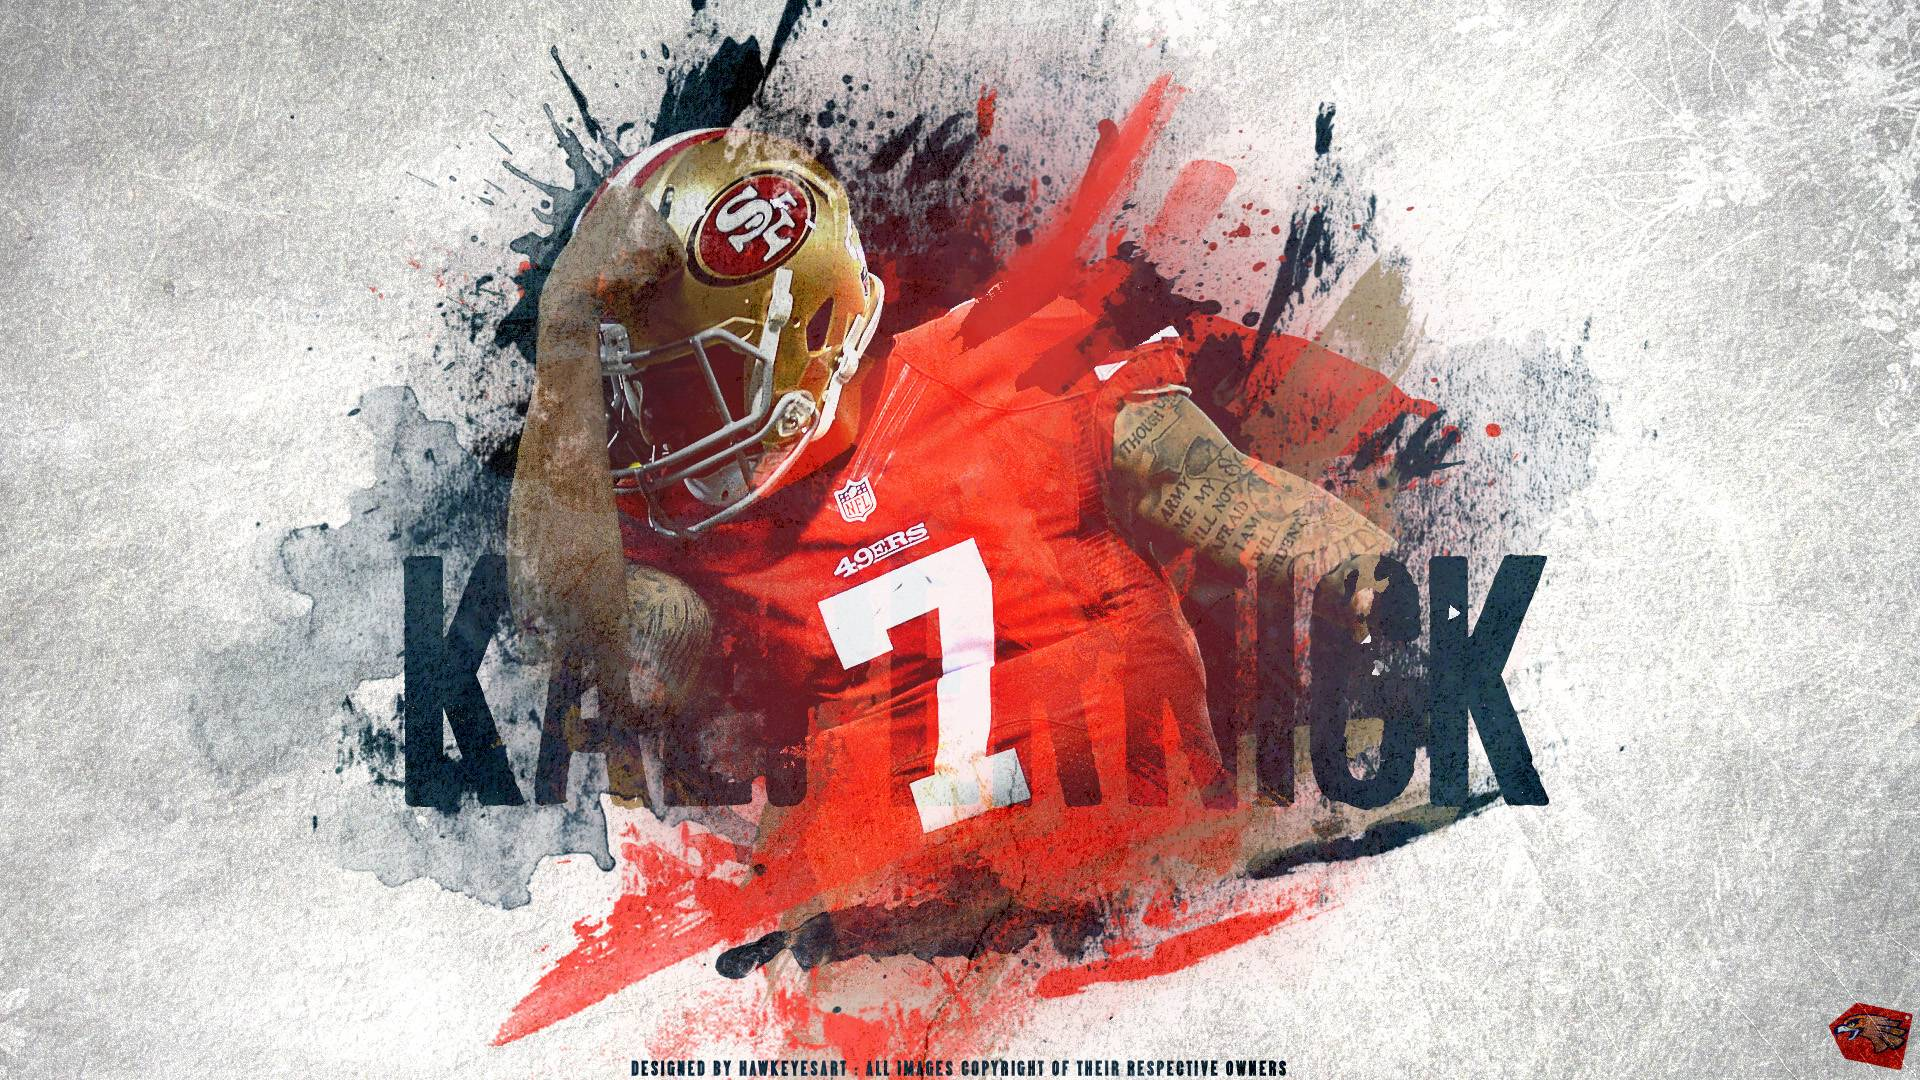 49ers hd wallpaper android